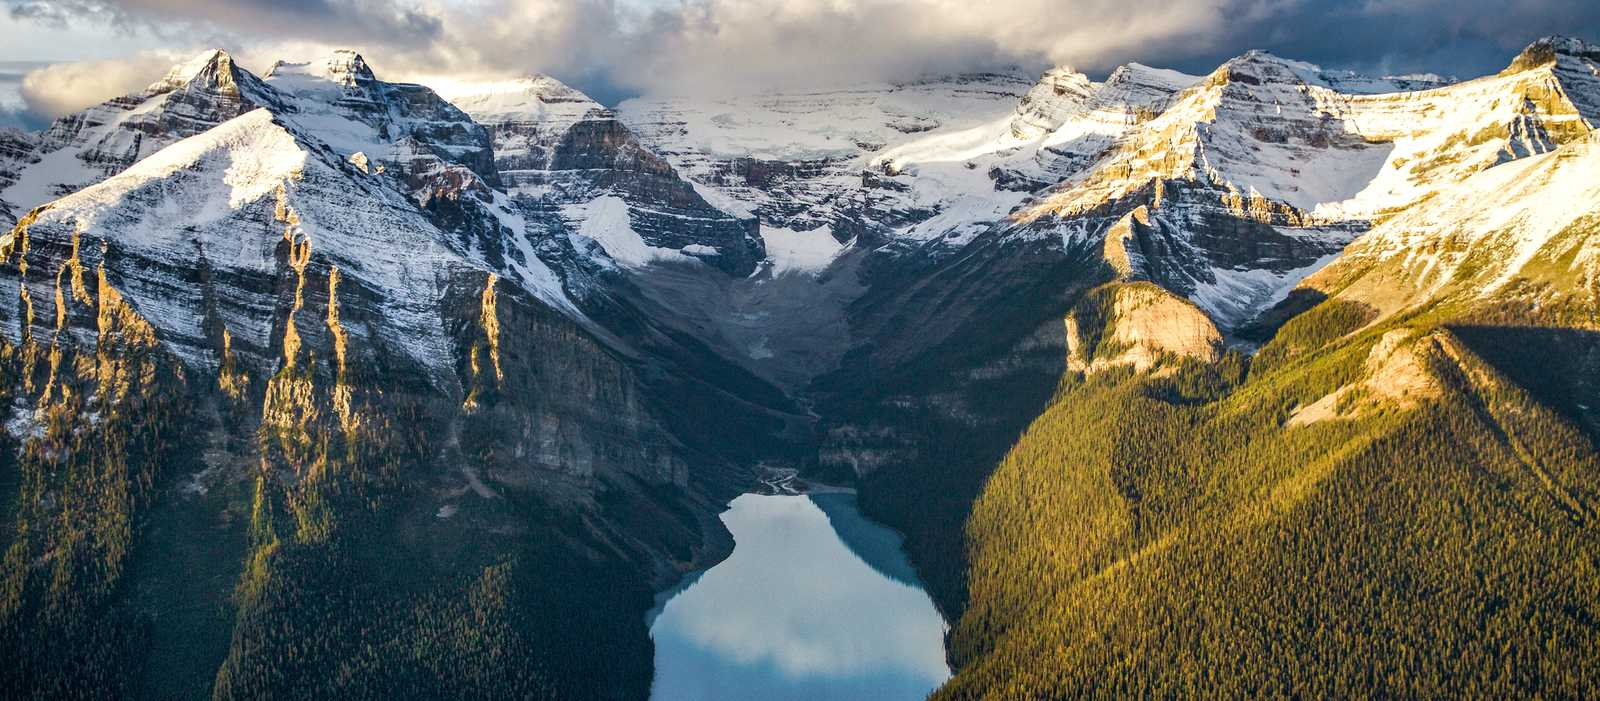 Vogelperspektive vom Lake Louise in Alberta